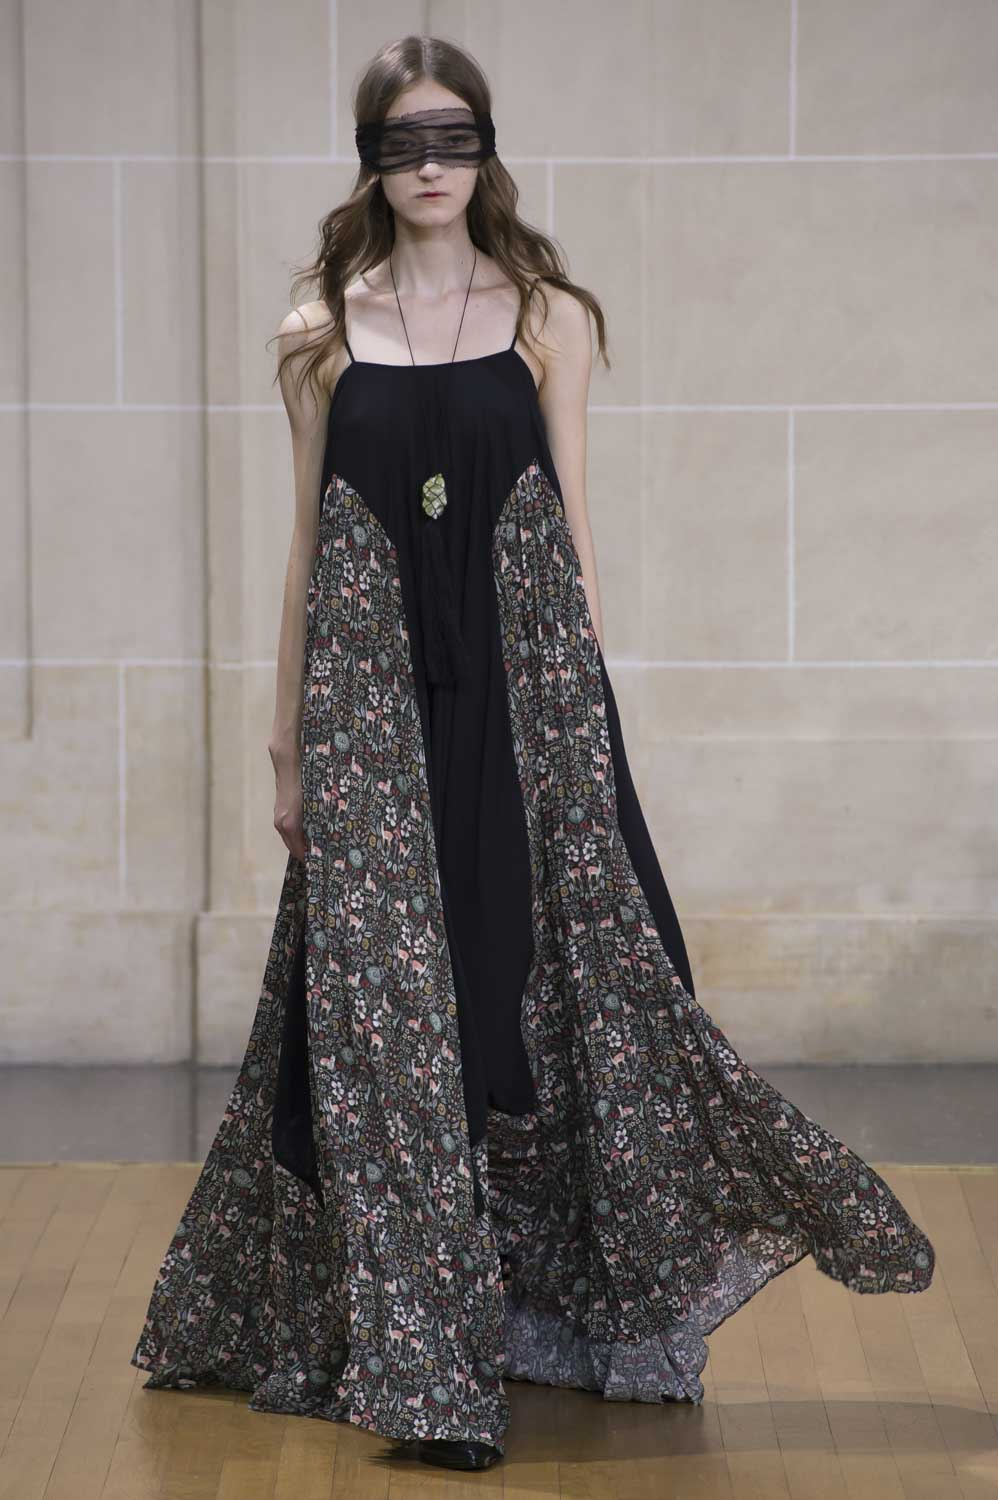 veronique_branquinho_ss16-18.jpg